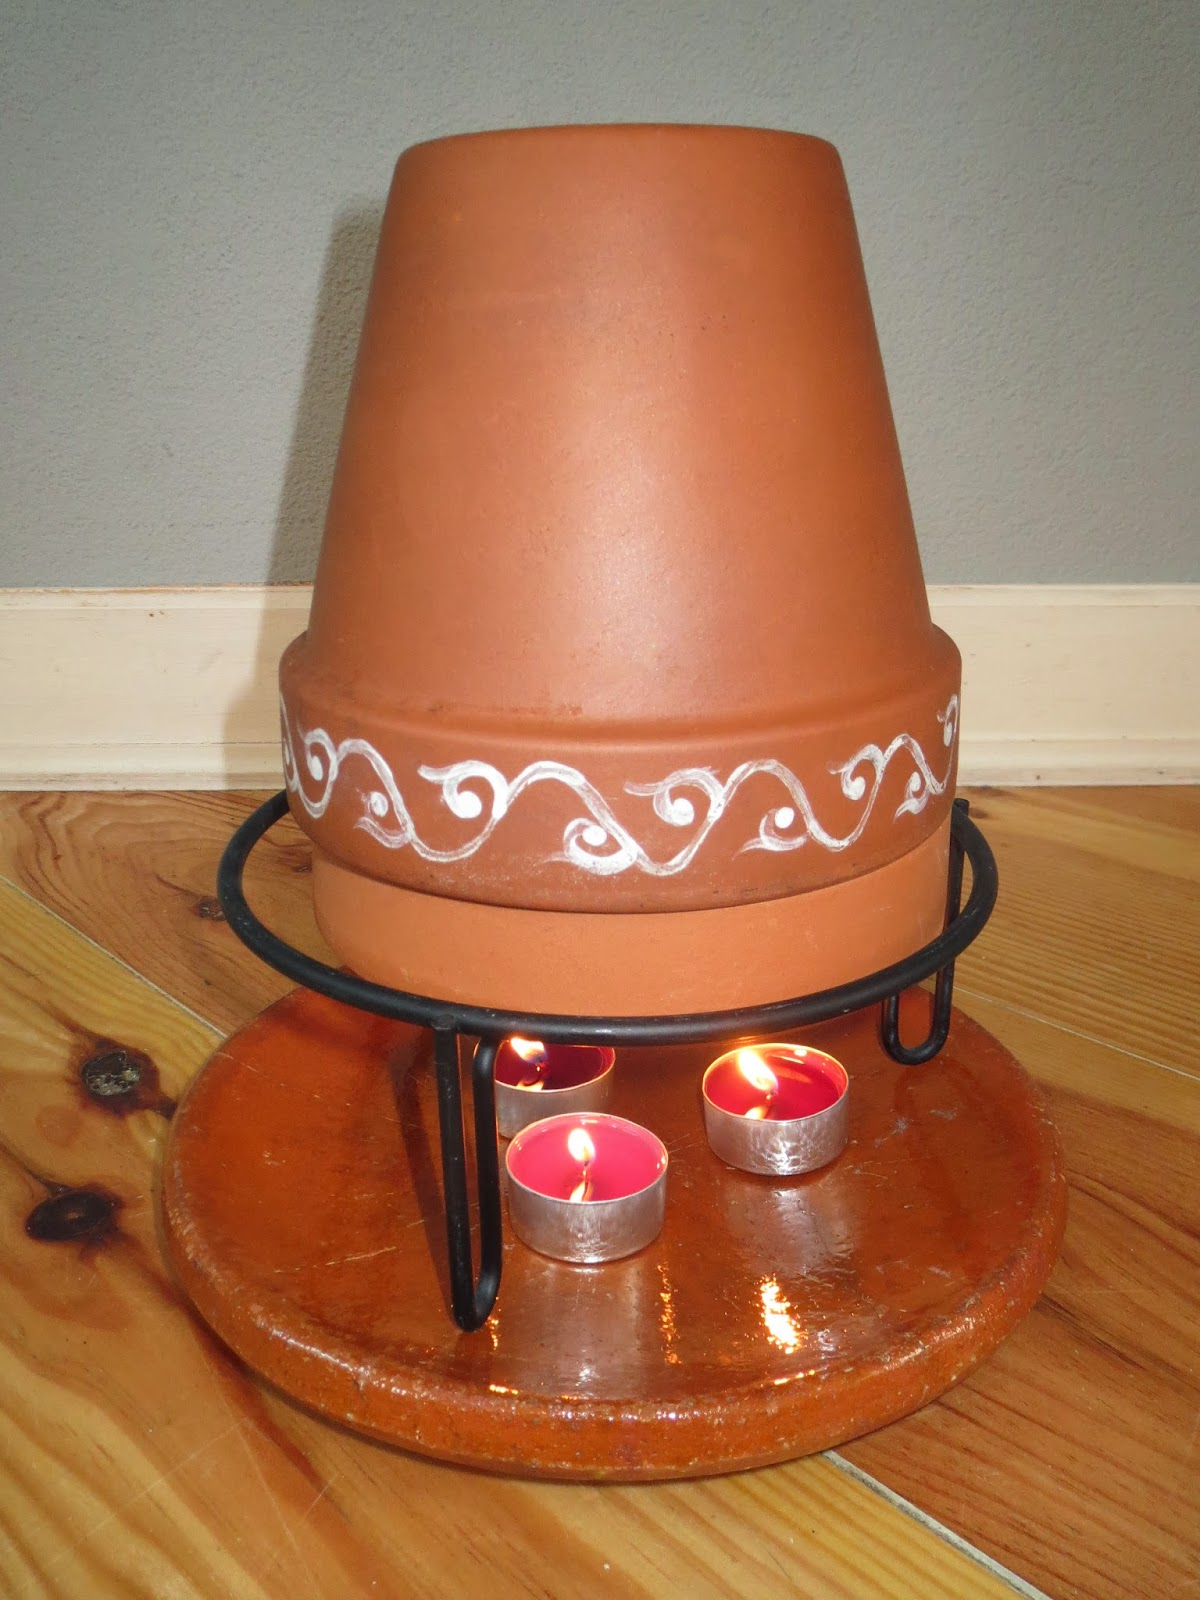 candle flower pot heater - startupinsights.org & Candle Flower Pot Heater \u0026 Candle Powered Air Heater - DIY Radiant ...